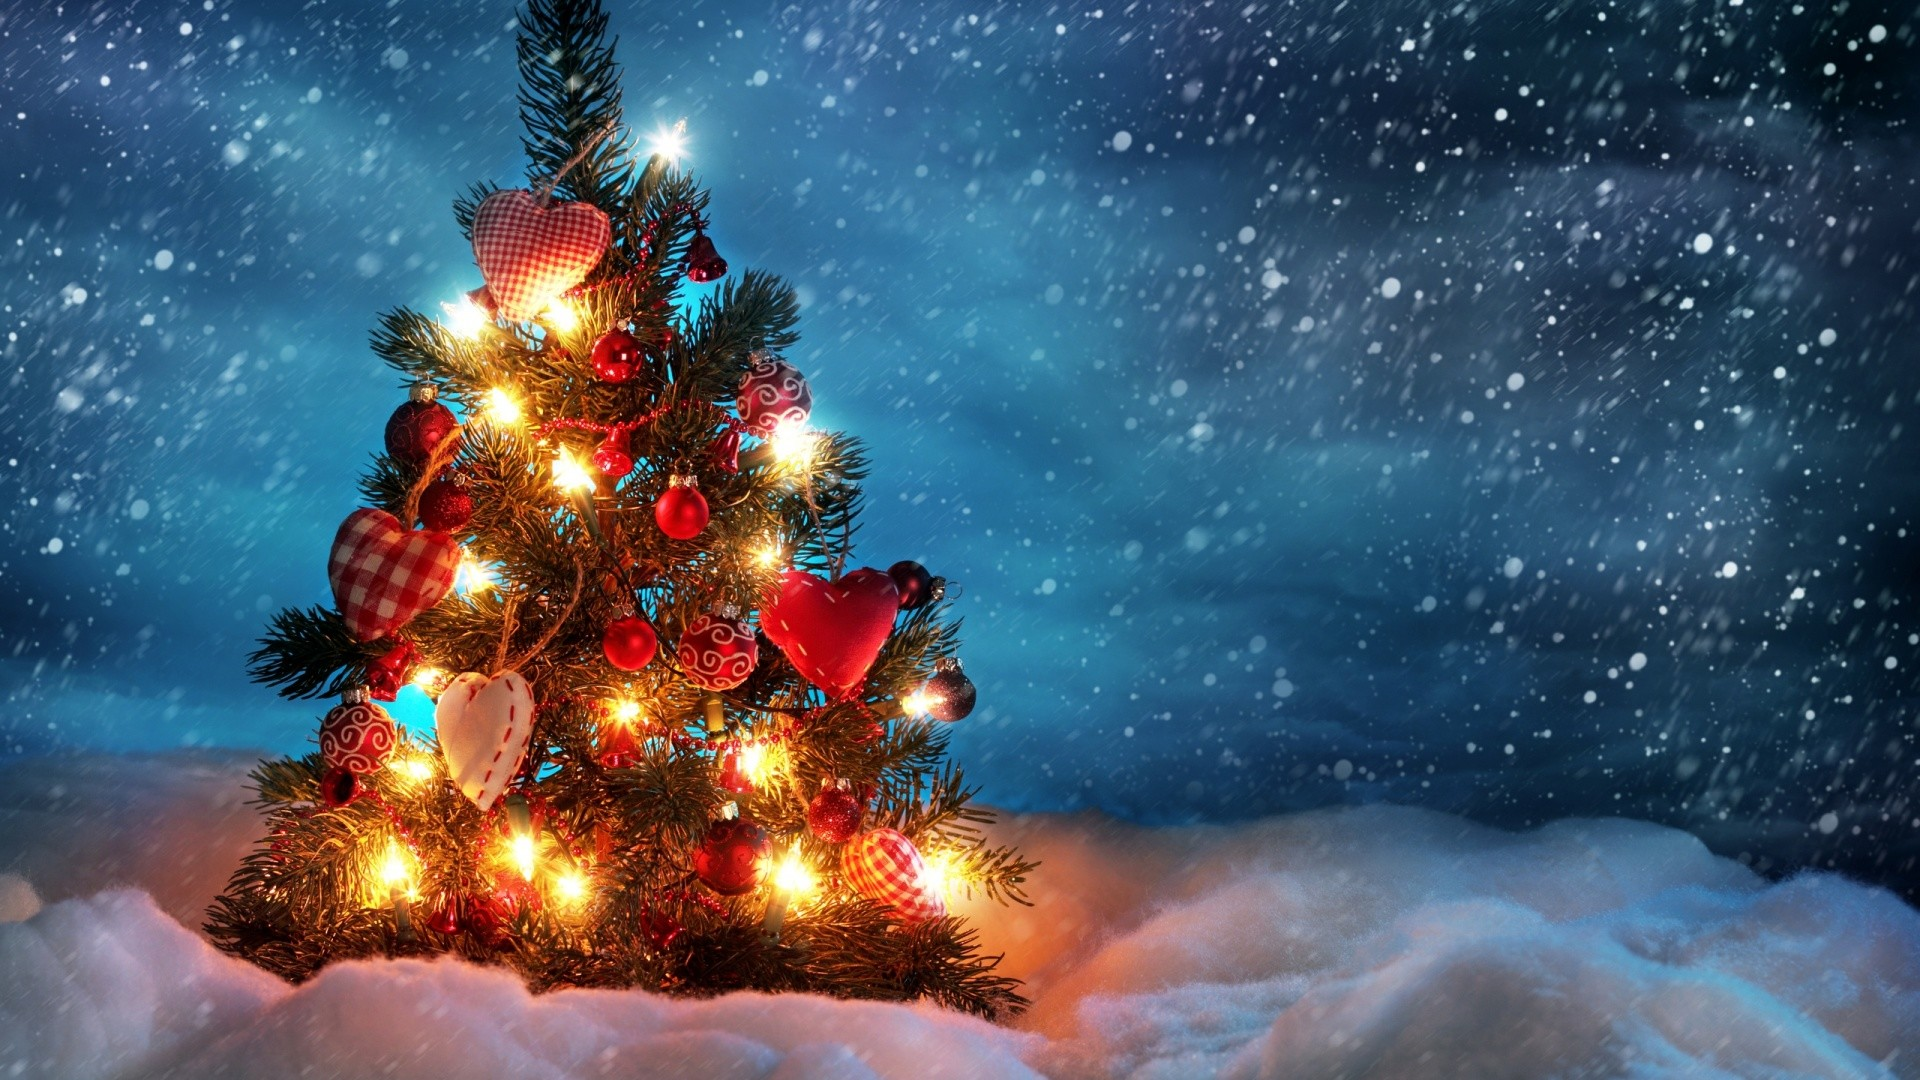 Christmas tree outside. How to set wallpaper on your desktop?  Click the download link from above and set the wallpaper on the desktop  from your …